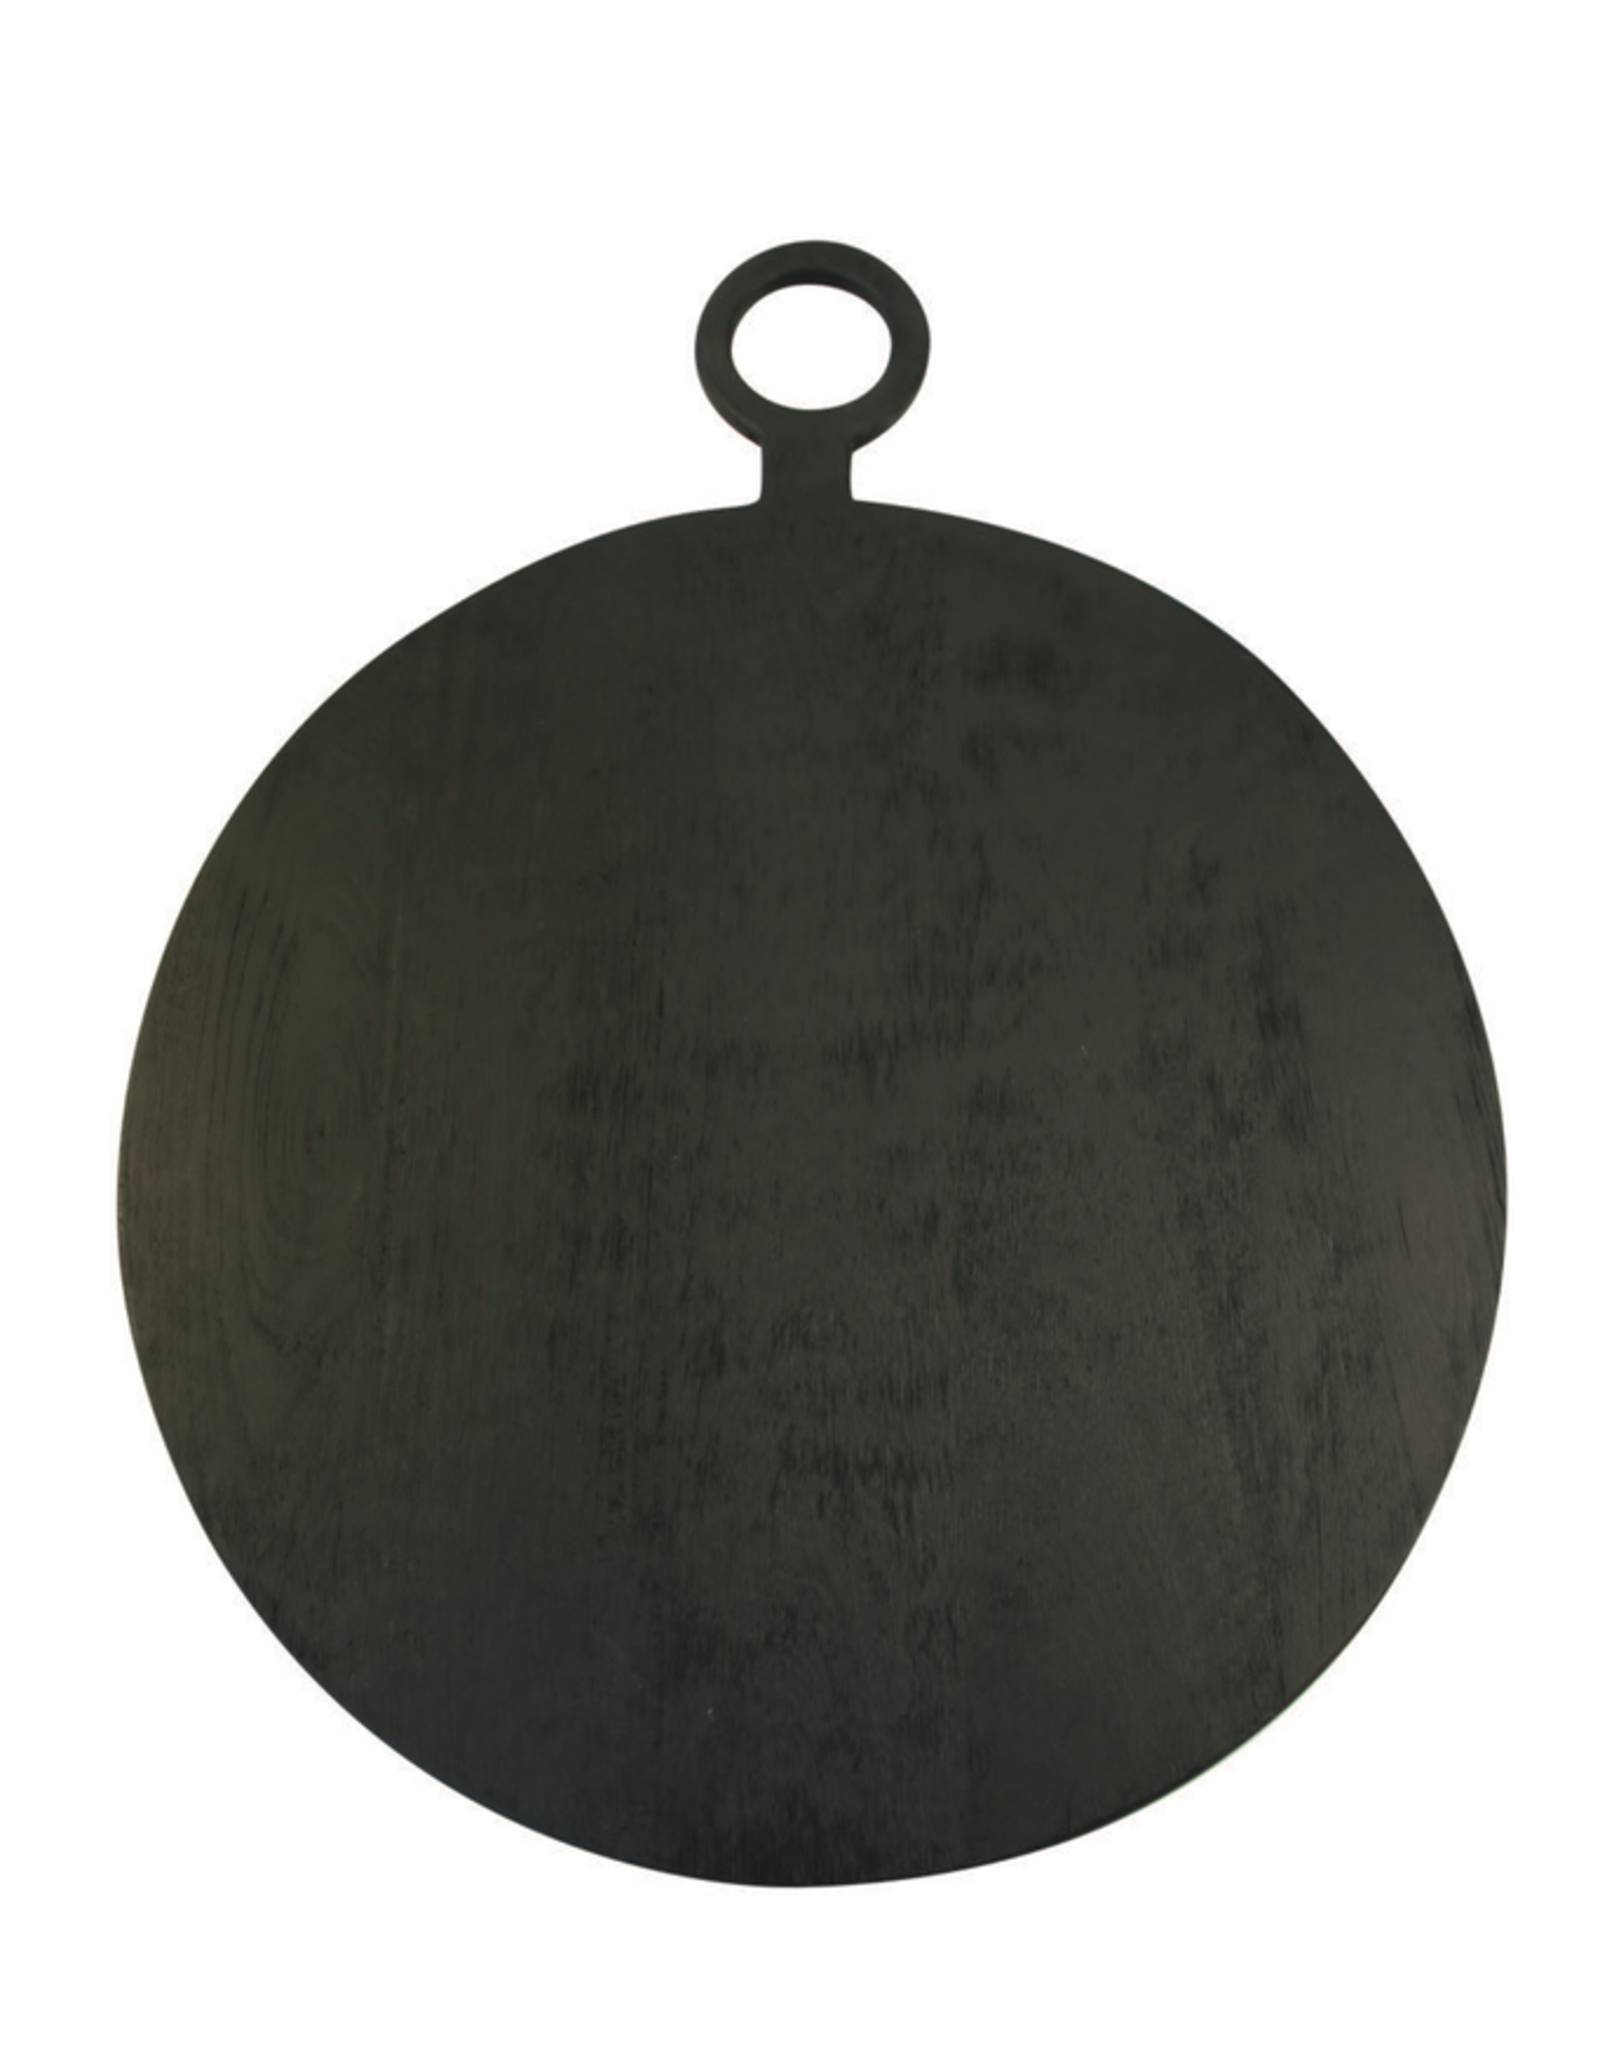 Cheese Board, Brushed Black Wood, Round Large